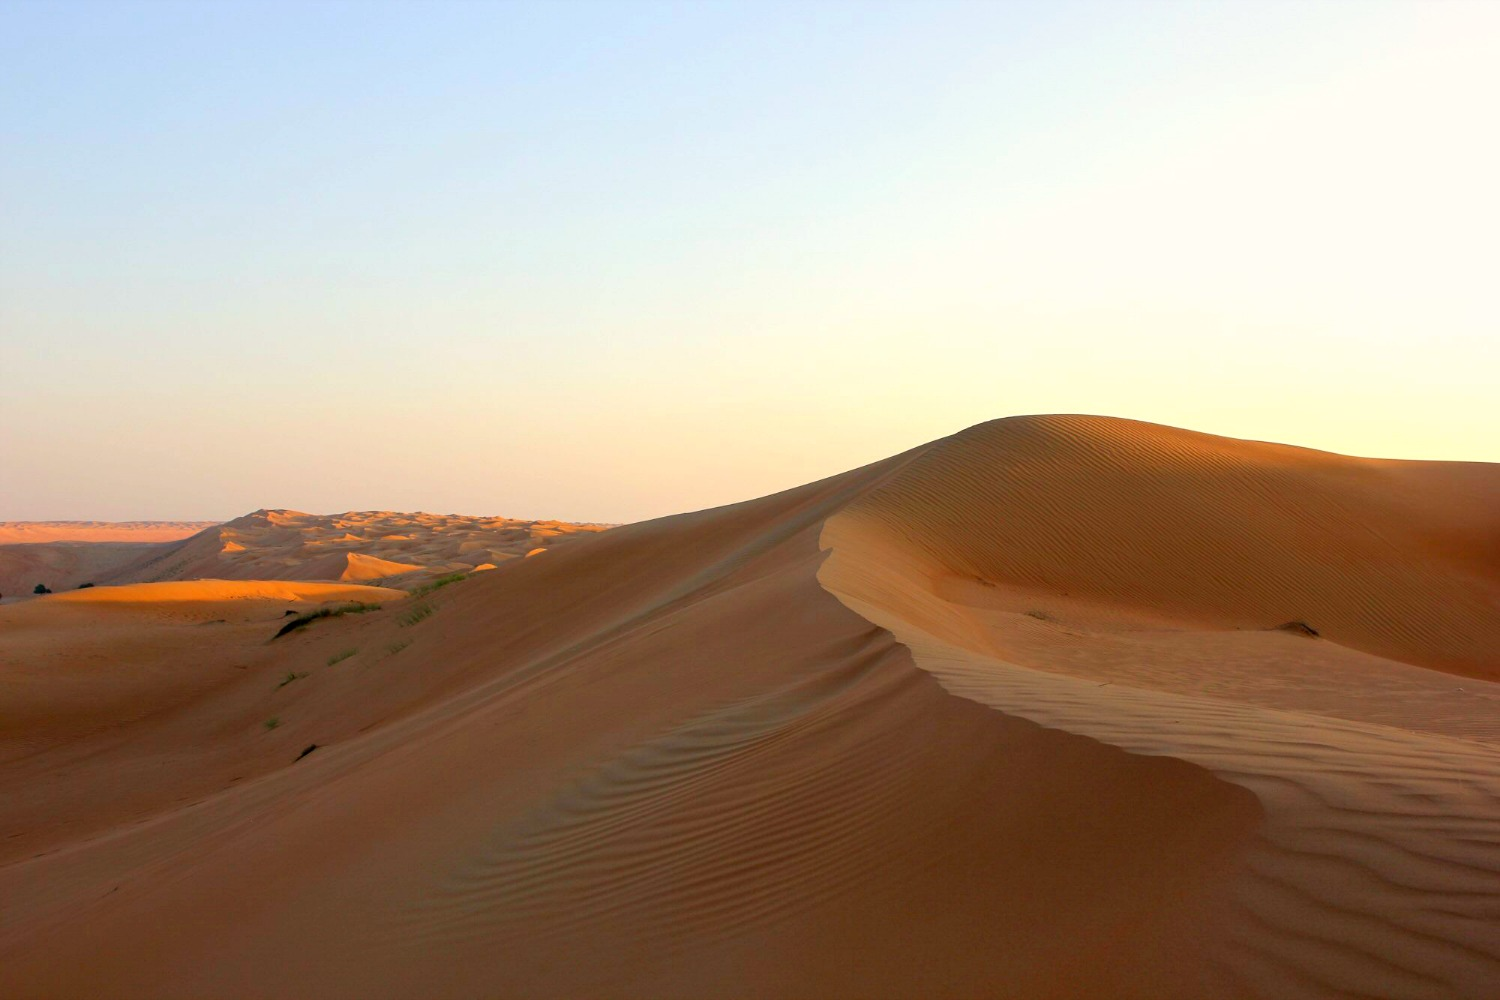 Sun setting over the orange dunes stretching into the distance at Wahiba Sands in Oman - my nine reasons to visit Oman with kids